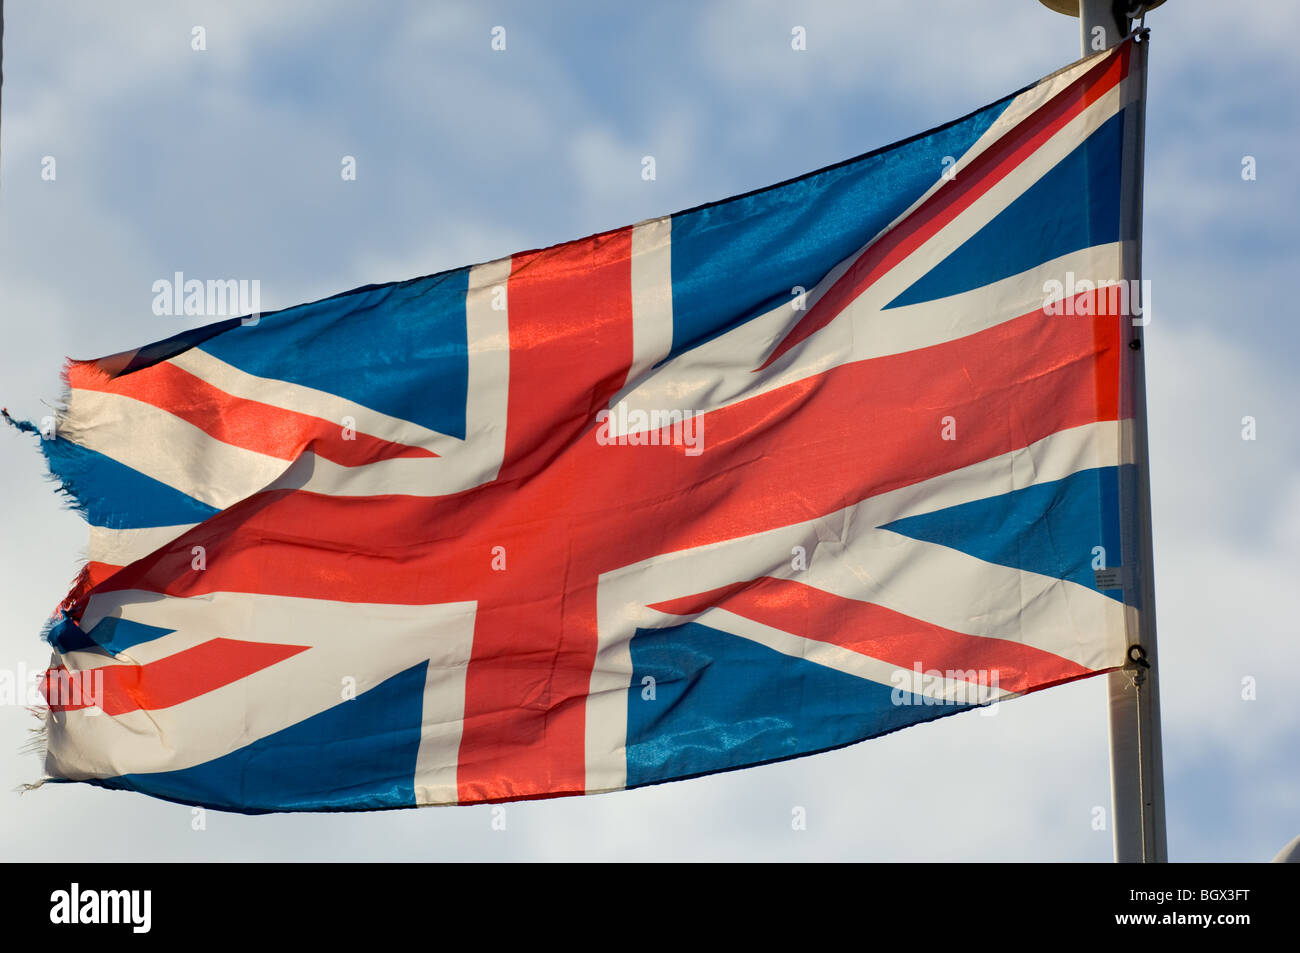 The national flag of the United Kingdom commonly knows as the Union Jack or Union Flag. Stock Photo